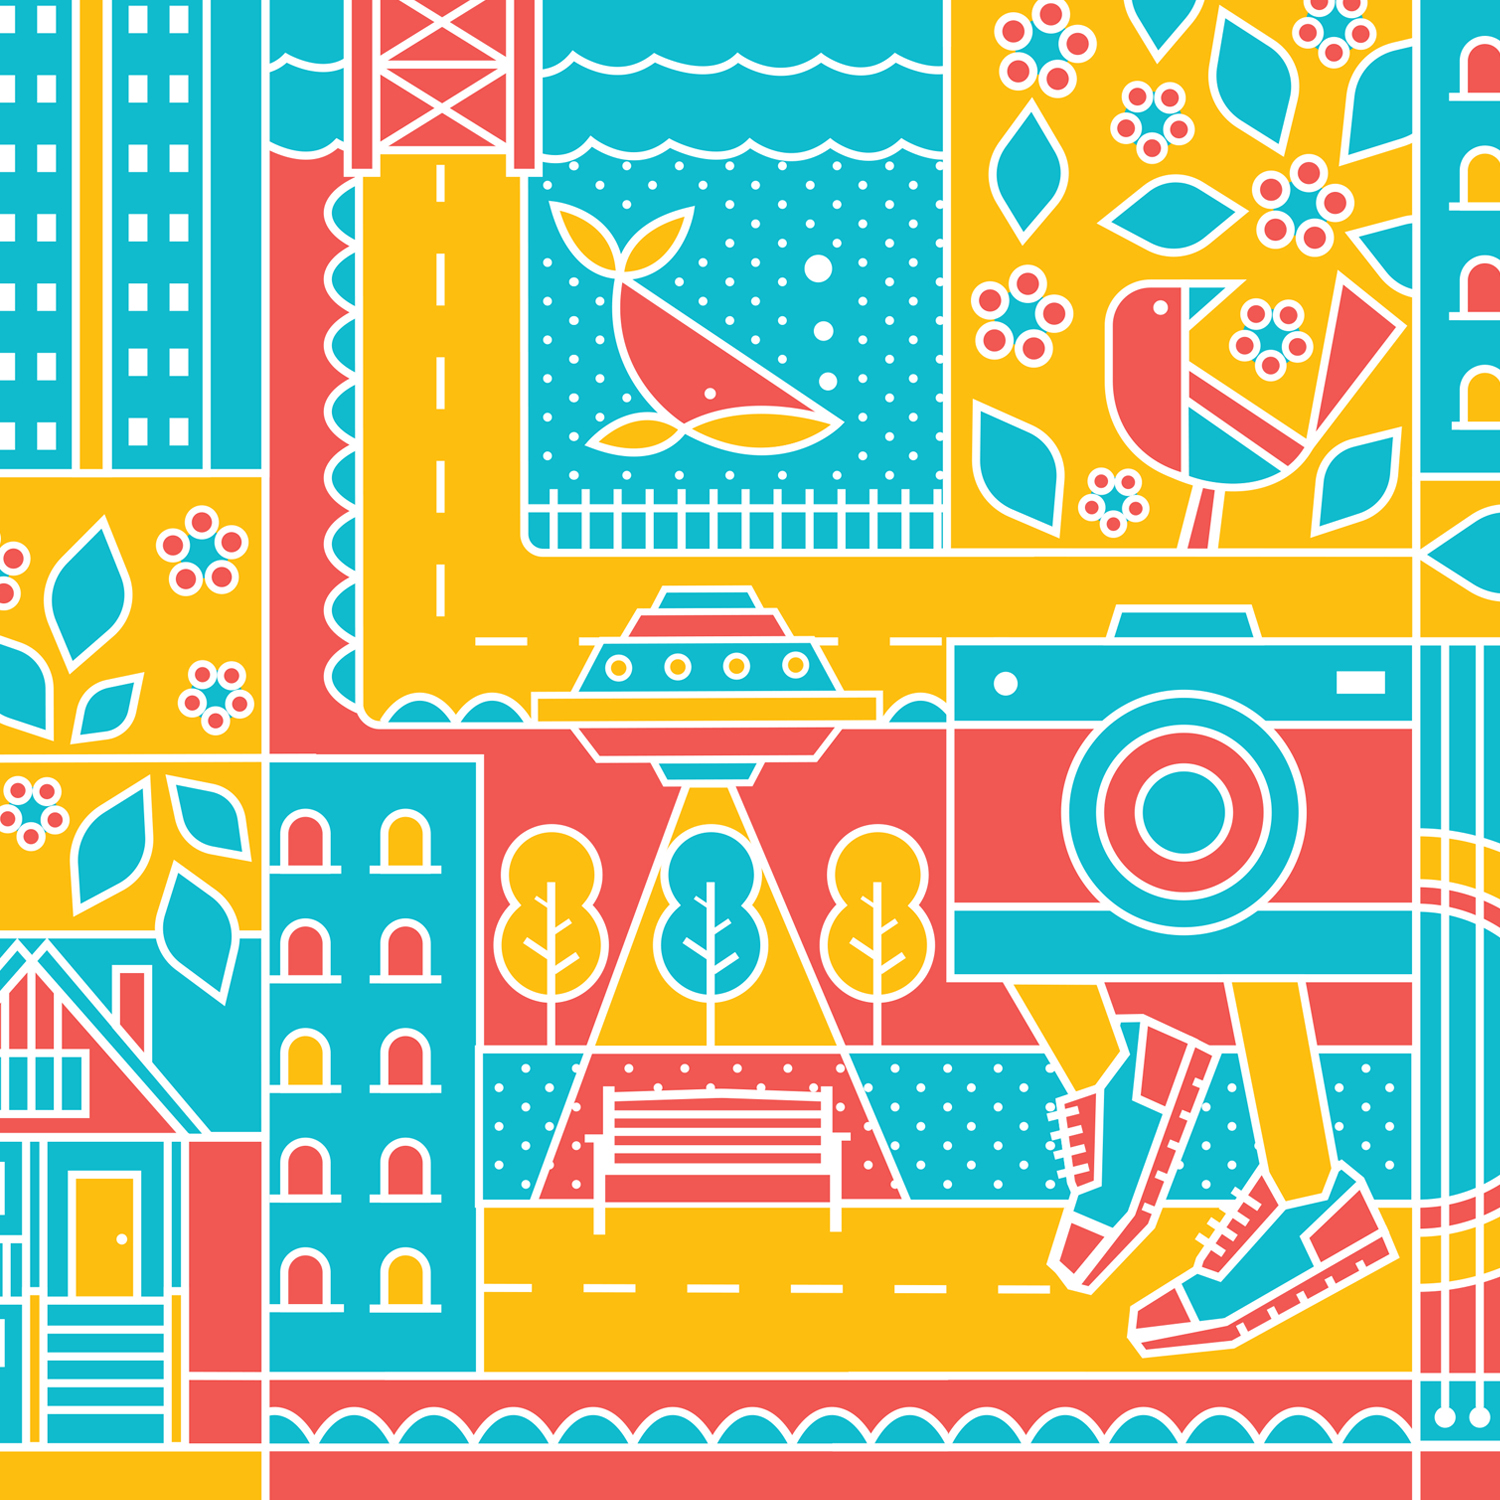 City of Vancouver: Wrap Project - MURAL + ILLUSTRATION